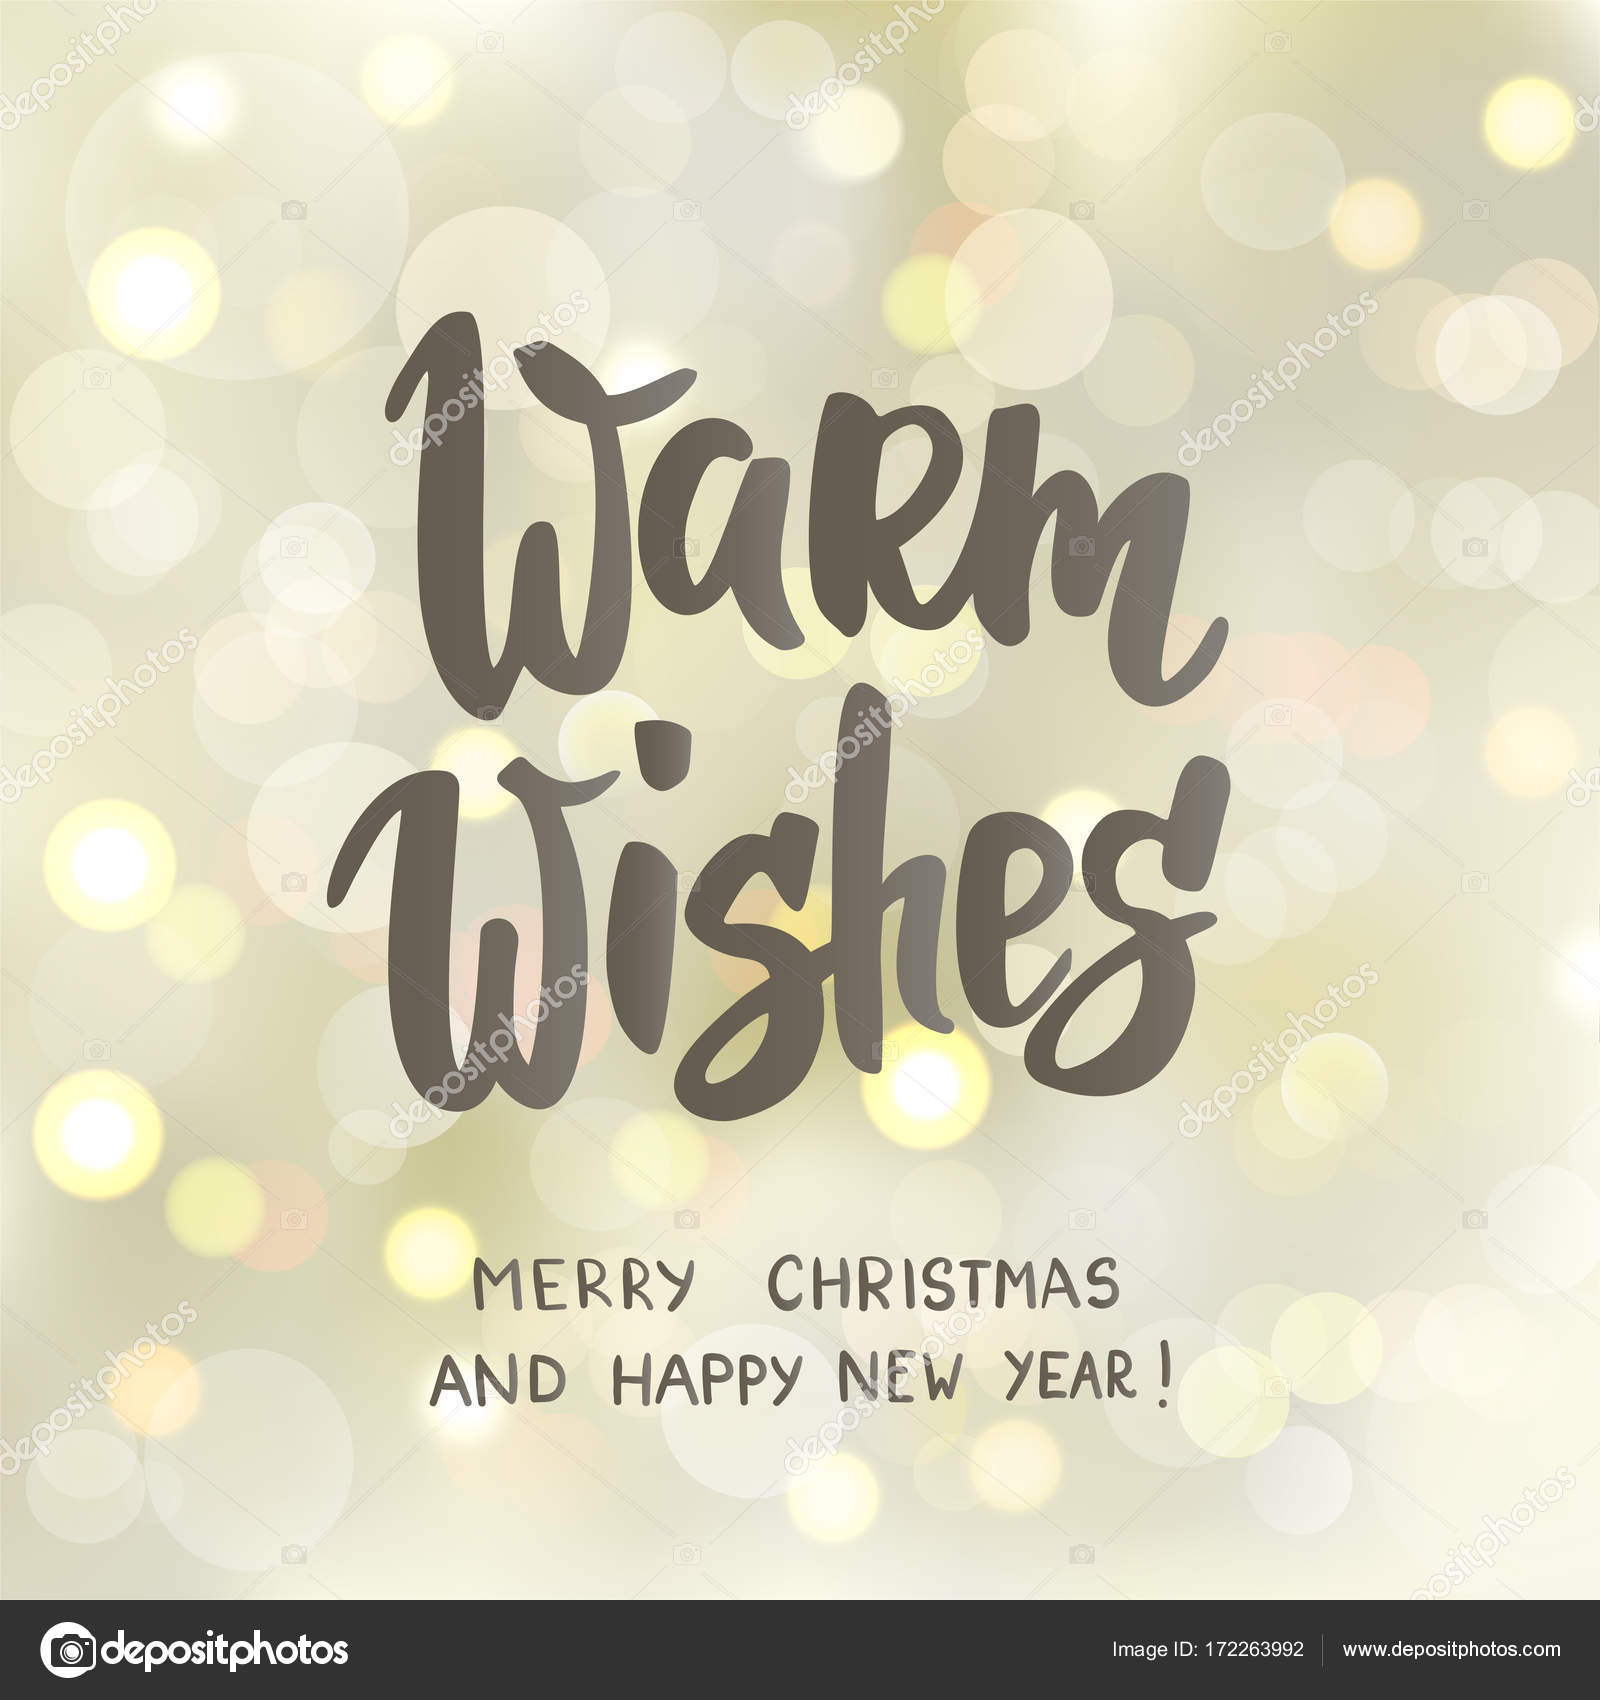 Warm wishes text, hand drawn letters. Holiday greetings quote. White ...